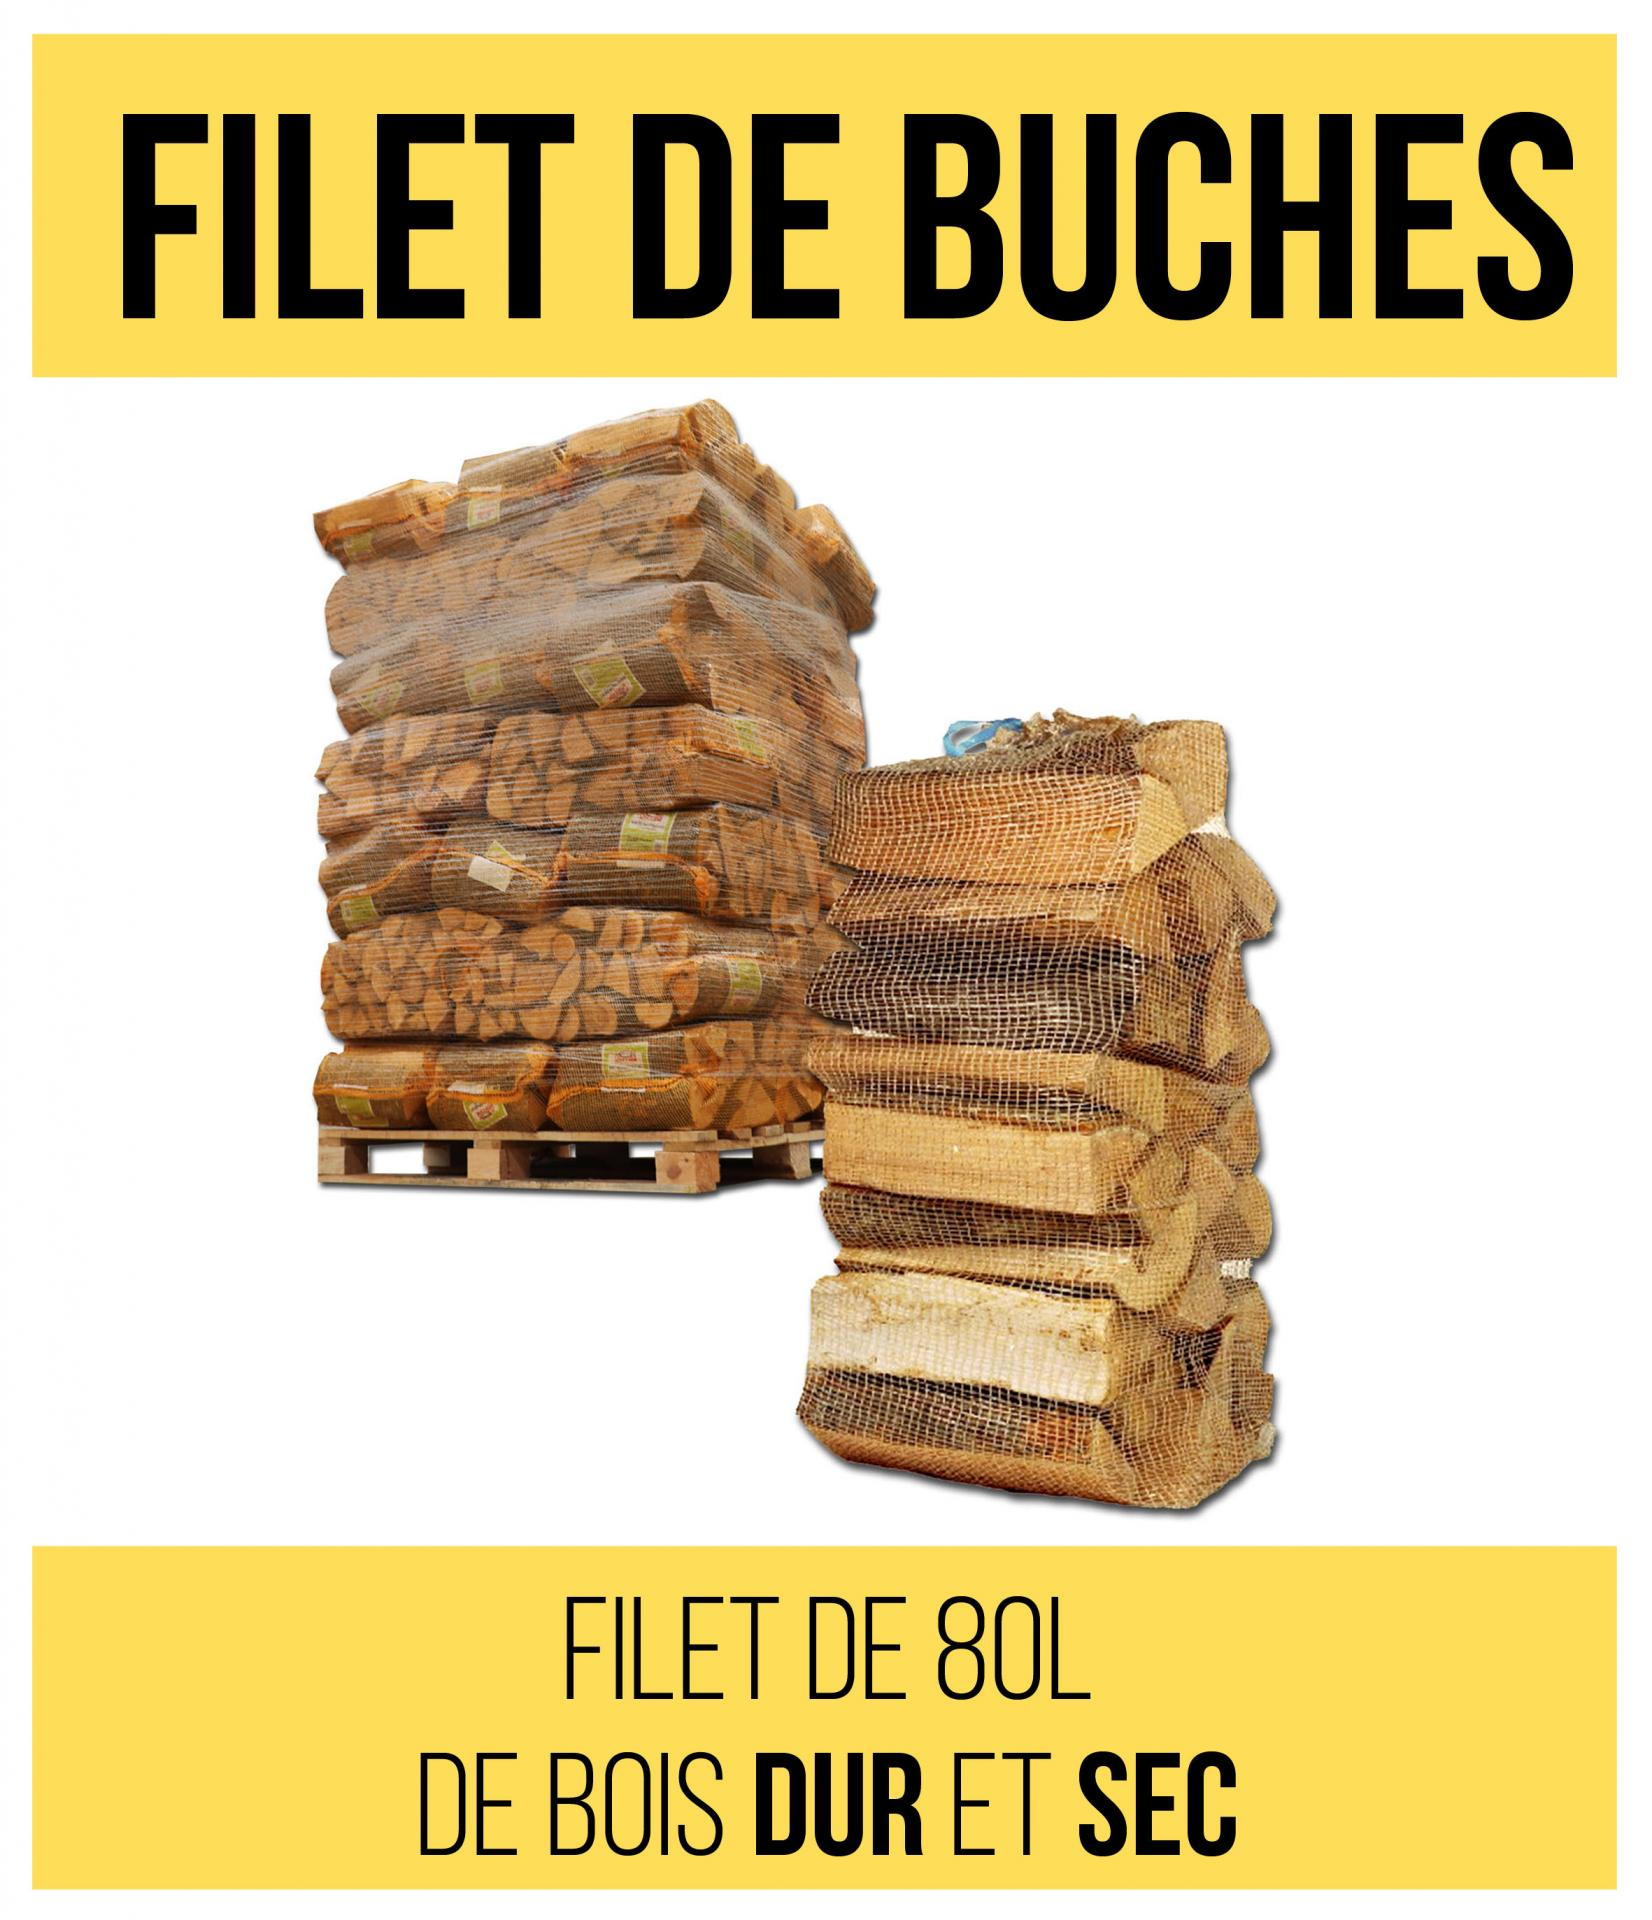 Filet de buches